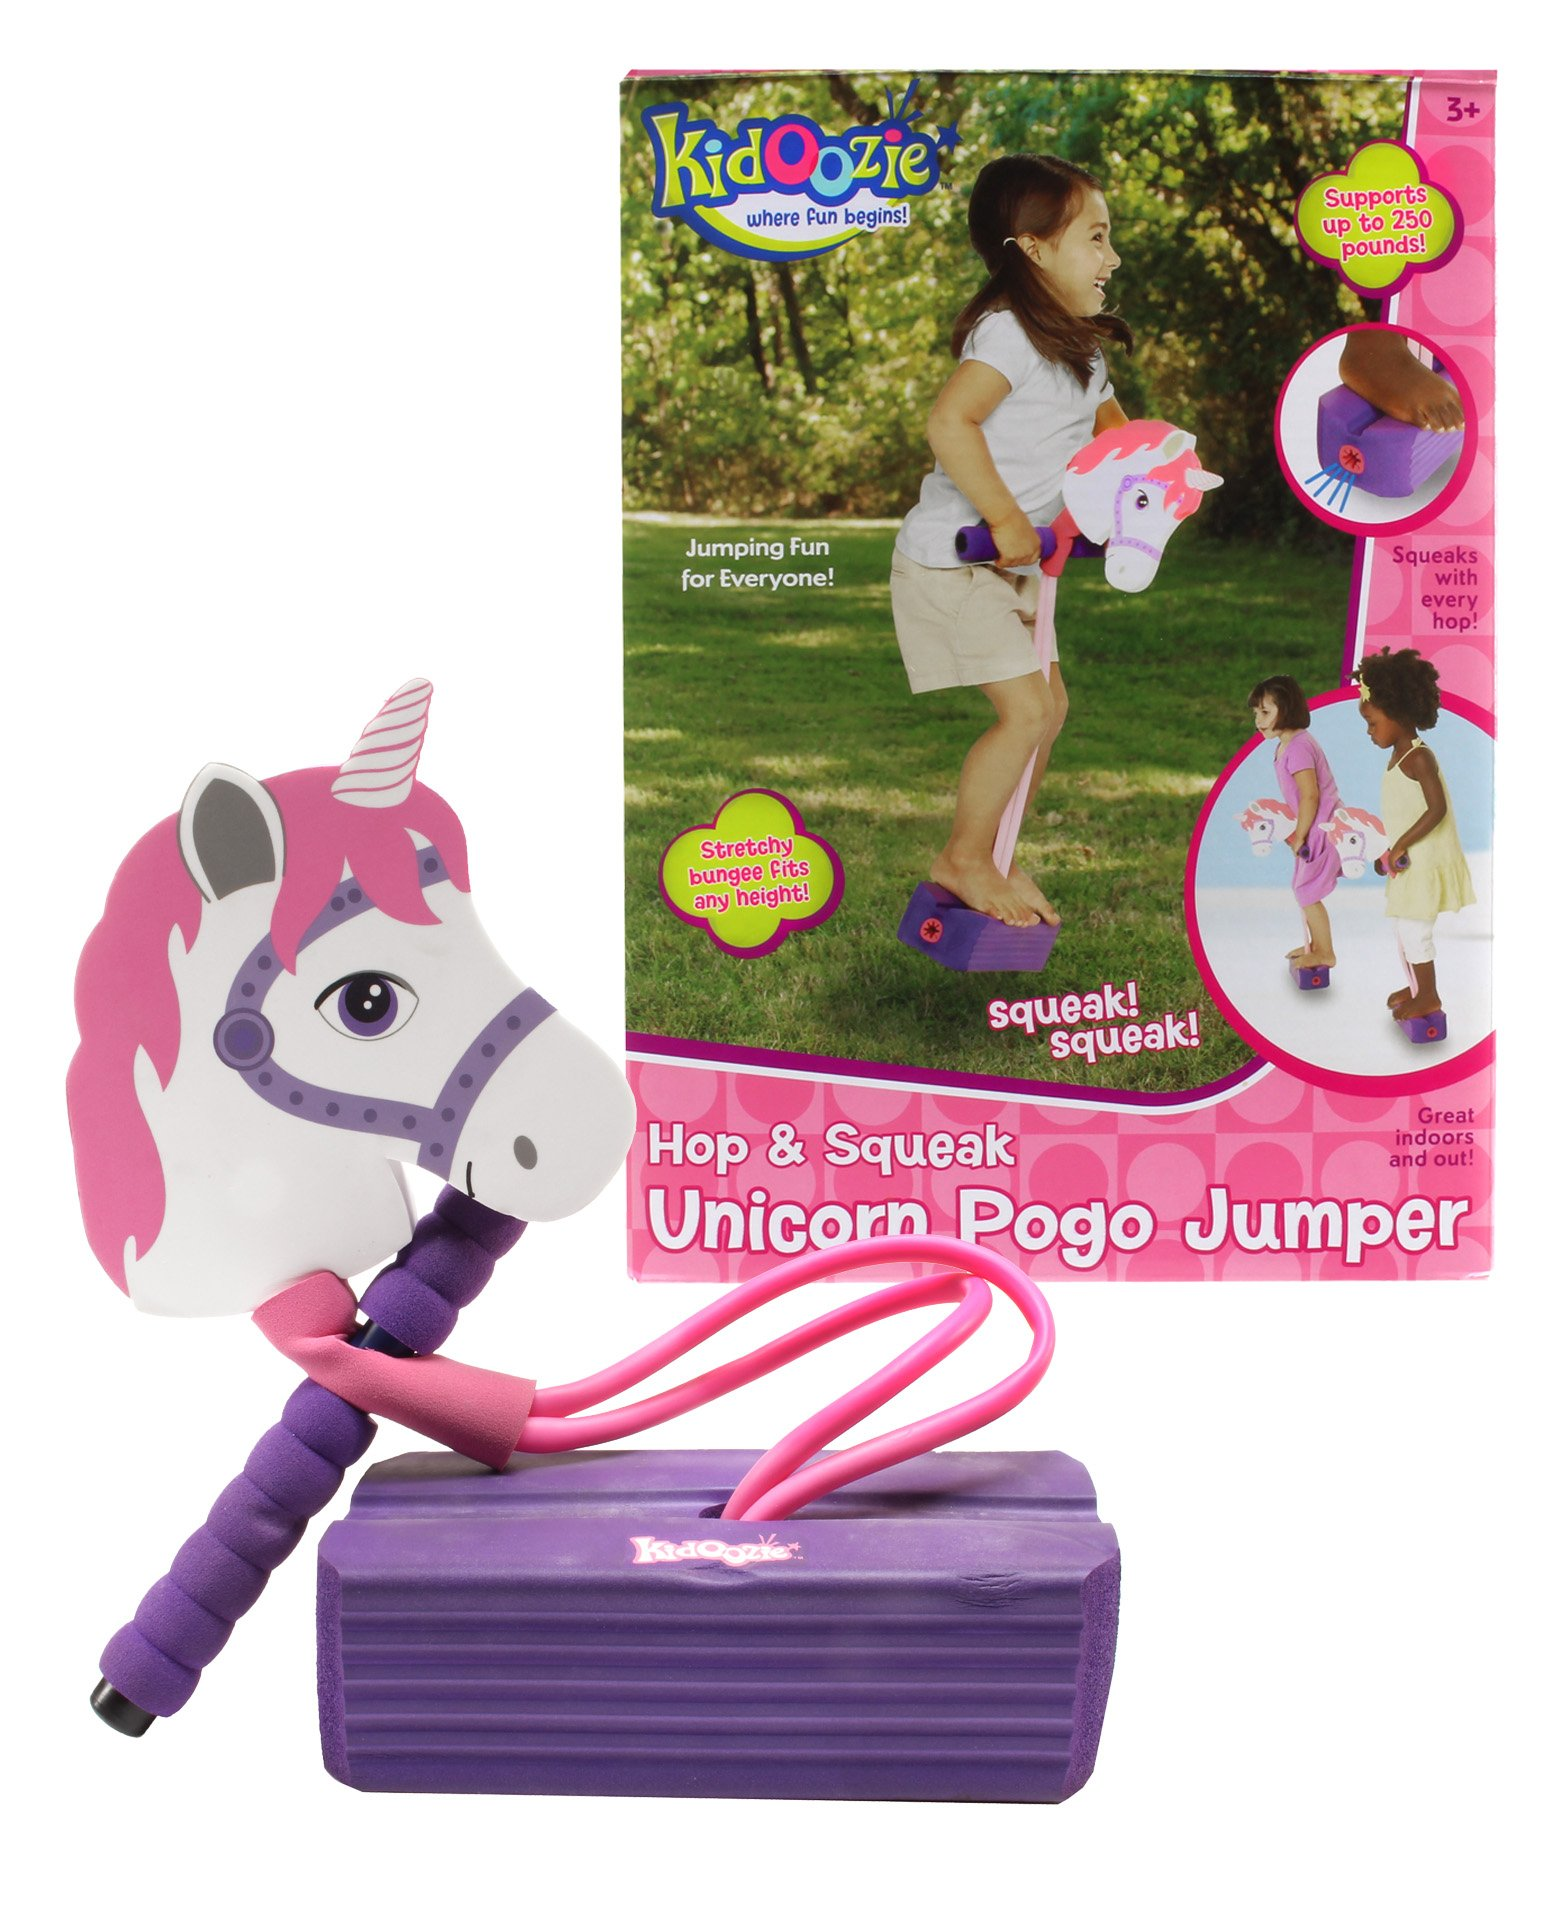 Kidoozie Foam Unicorn Pogo Jumper – Fun and Safe Play – Encourages an Active Lifestyle – Makes Squeaky Sounds – For All Sizes, 250 Pound Capacity by Kidoozie